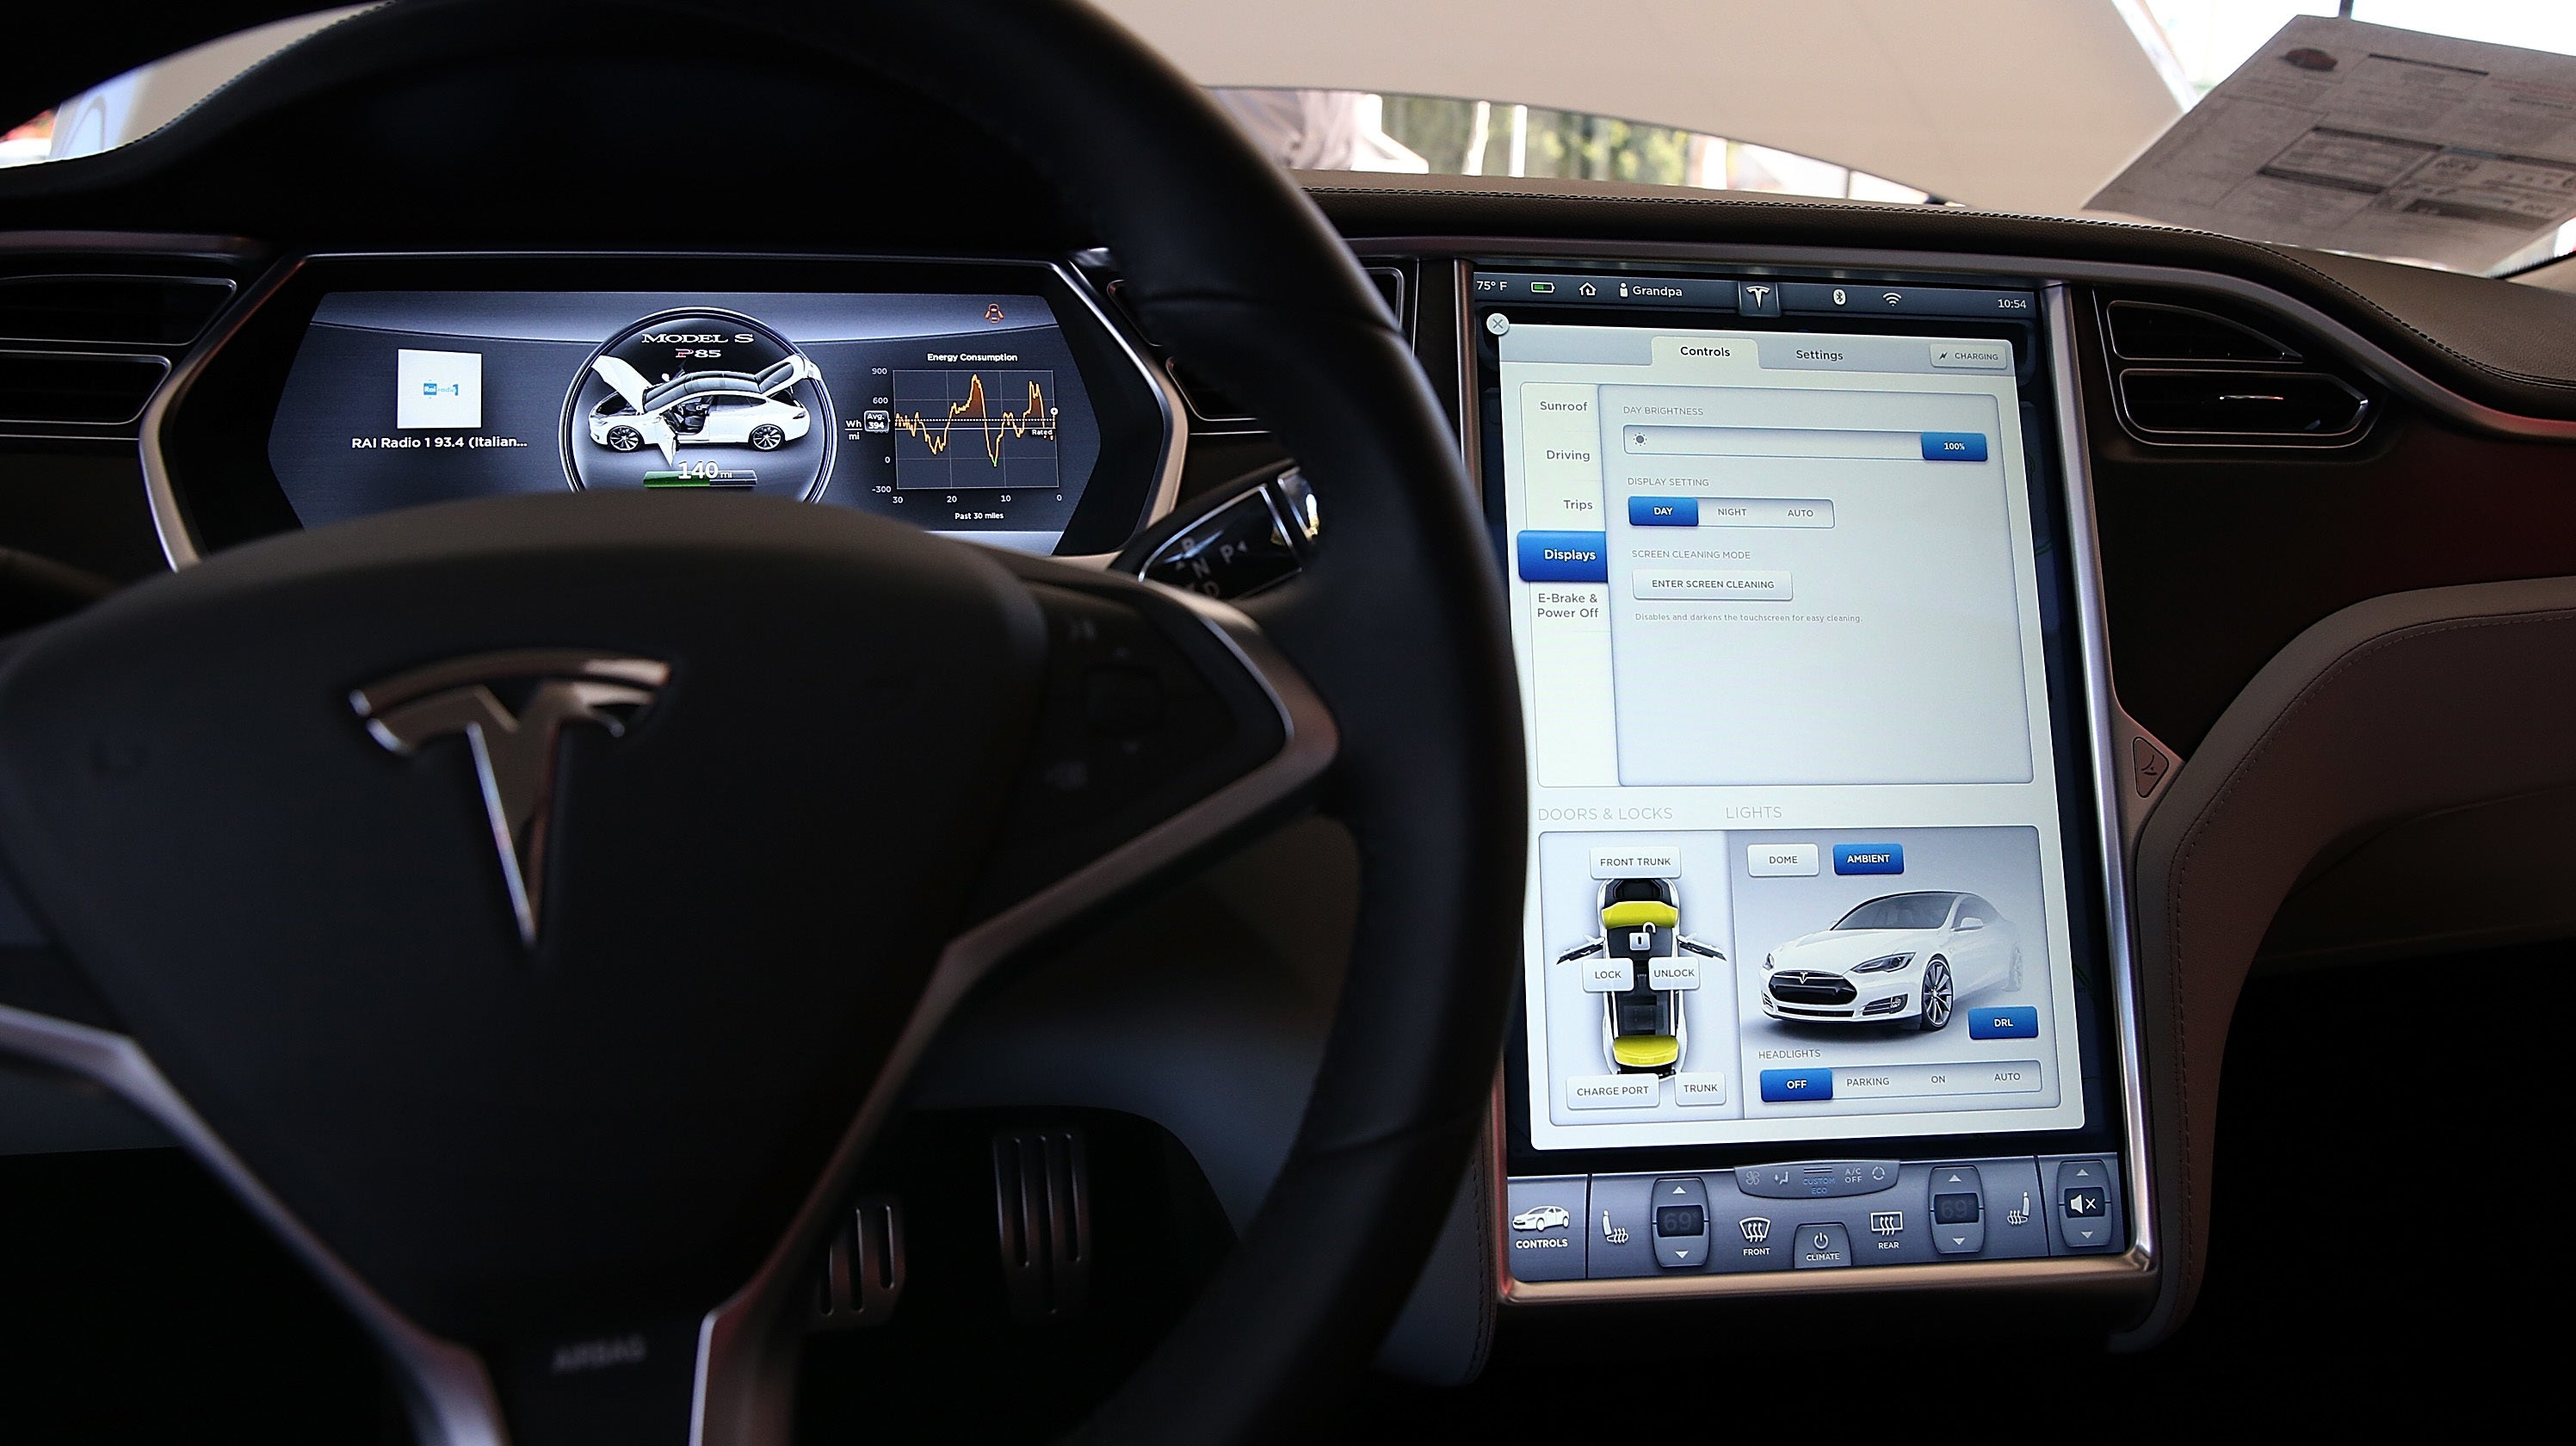 Tesla Model S Appeared To Drive 11km On Autopilot While Drunk Driver Slept